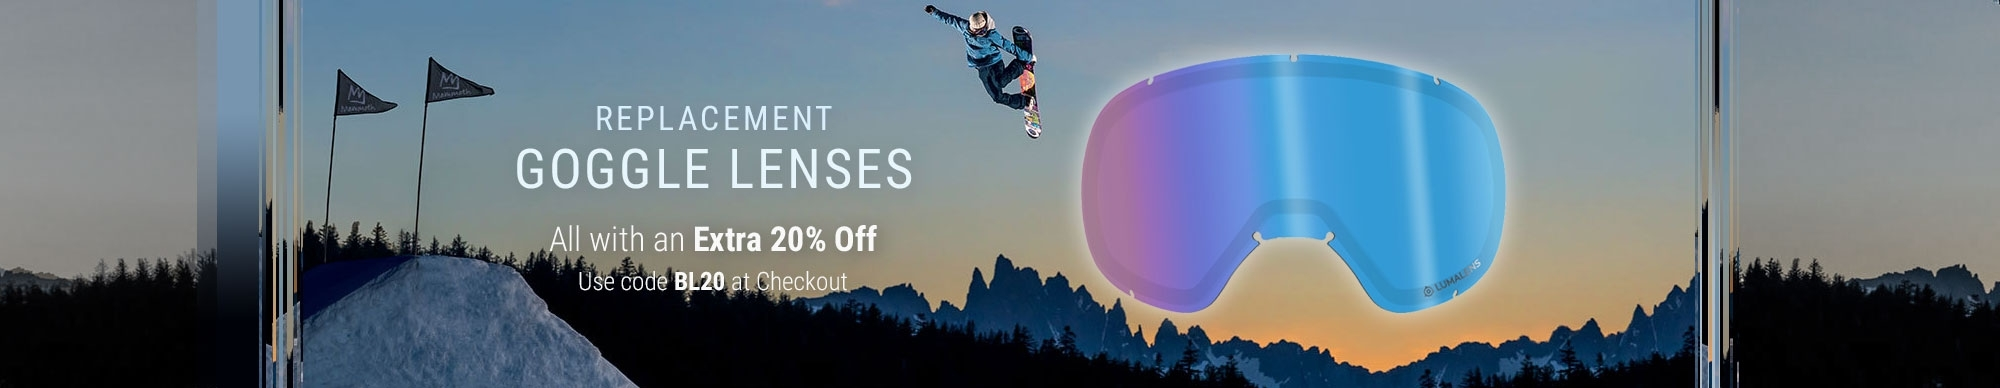 Replacement Goggle Lenses